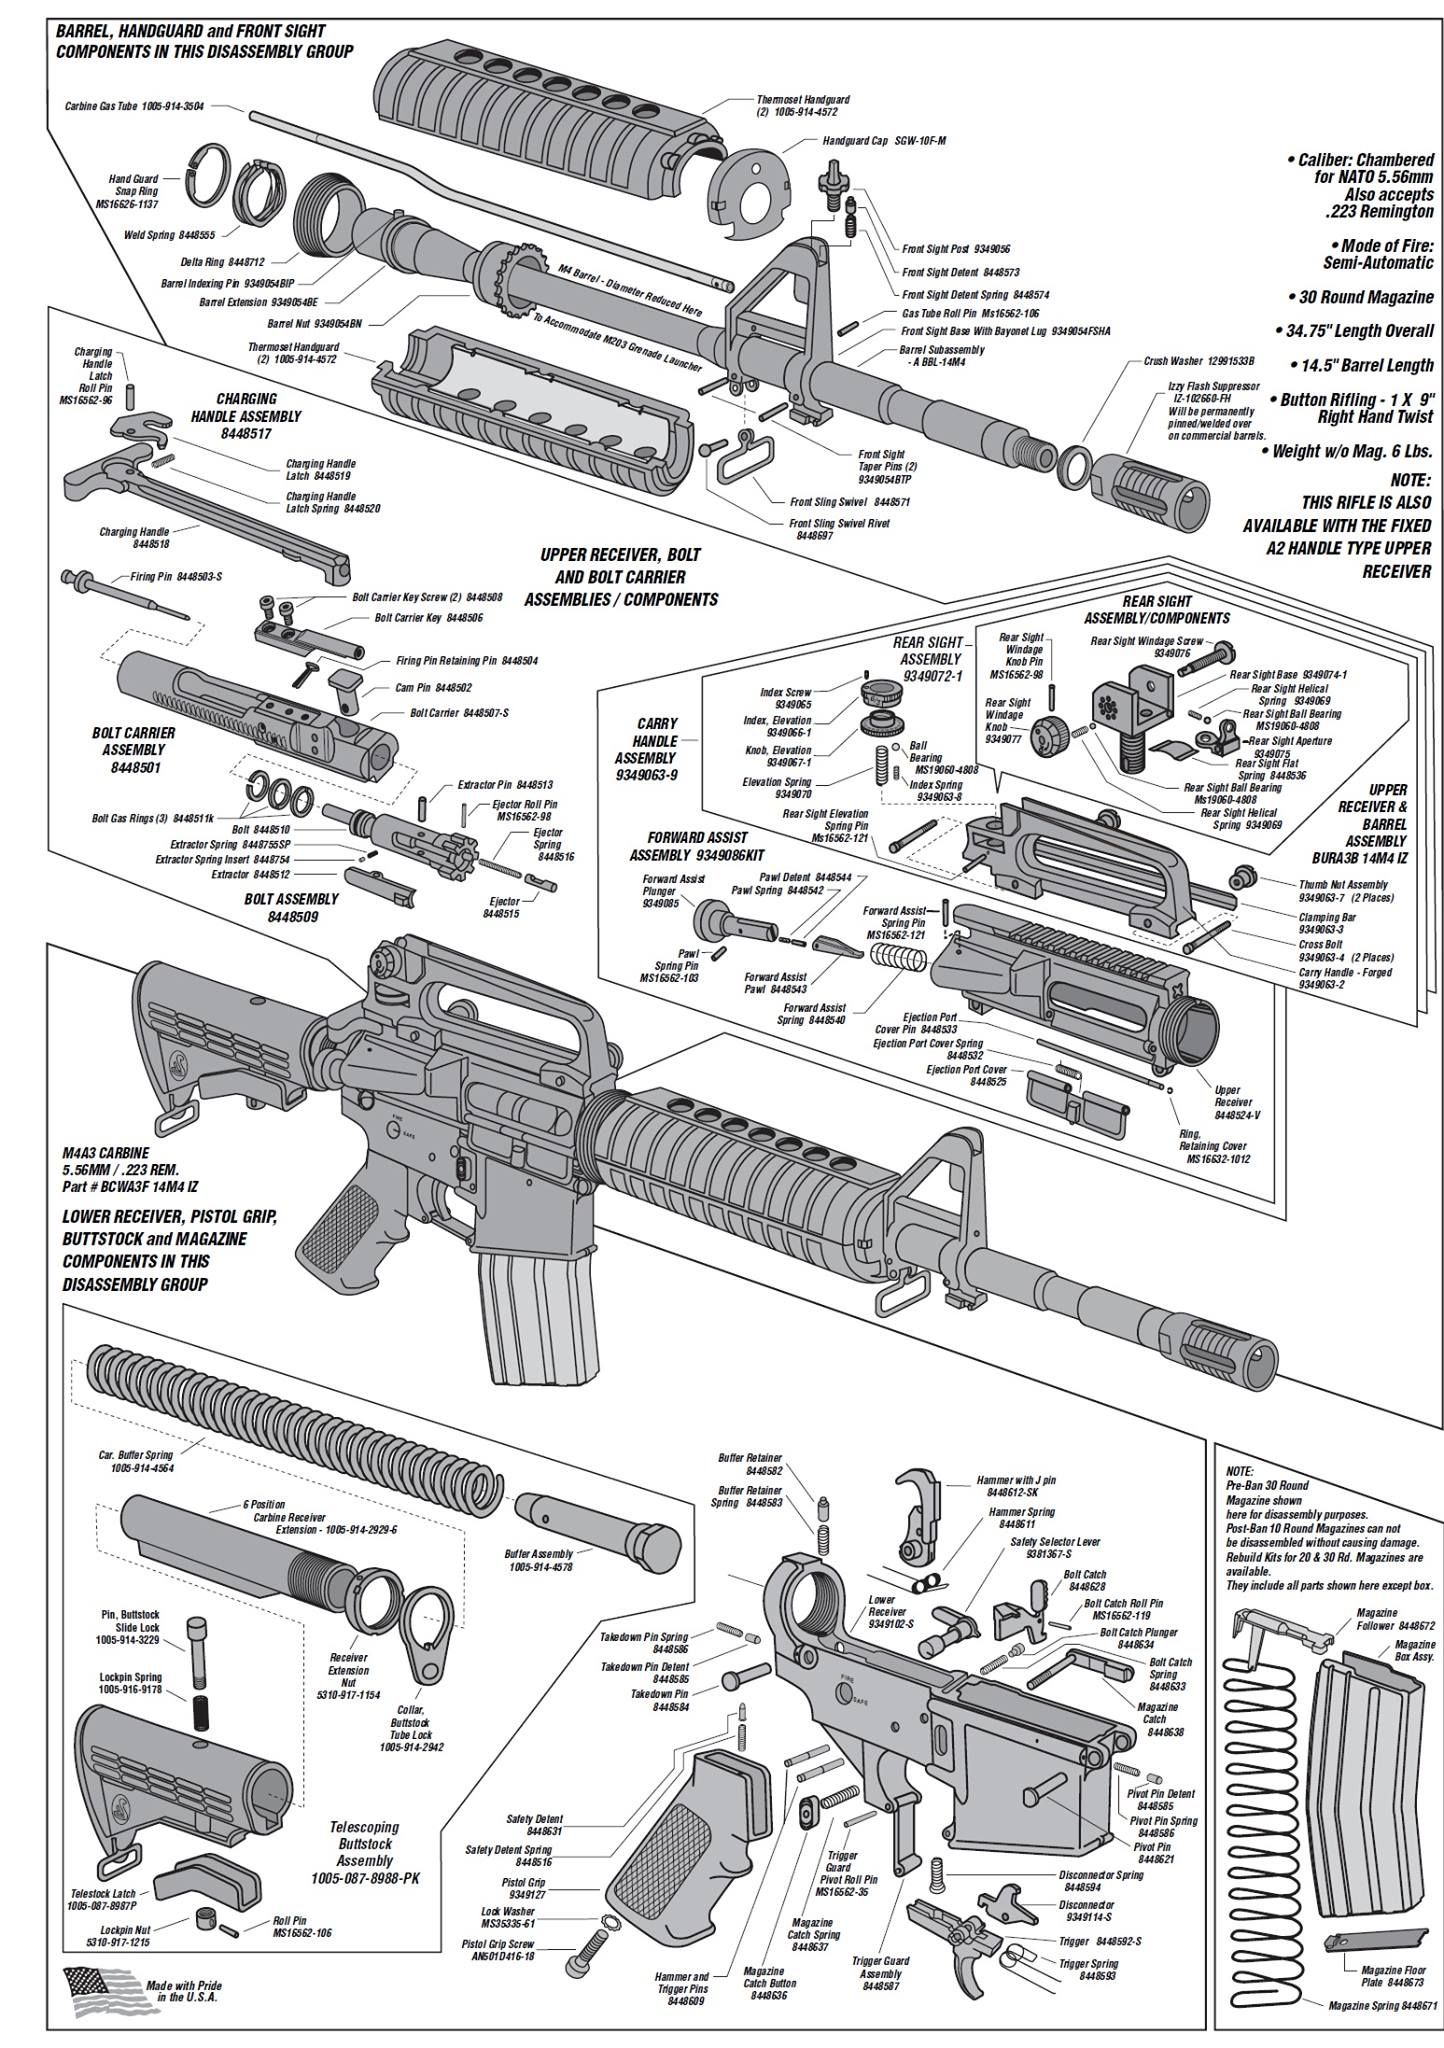 Parts Breakdown Ar 15 Tactical Rifles